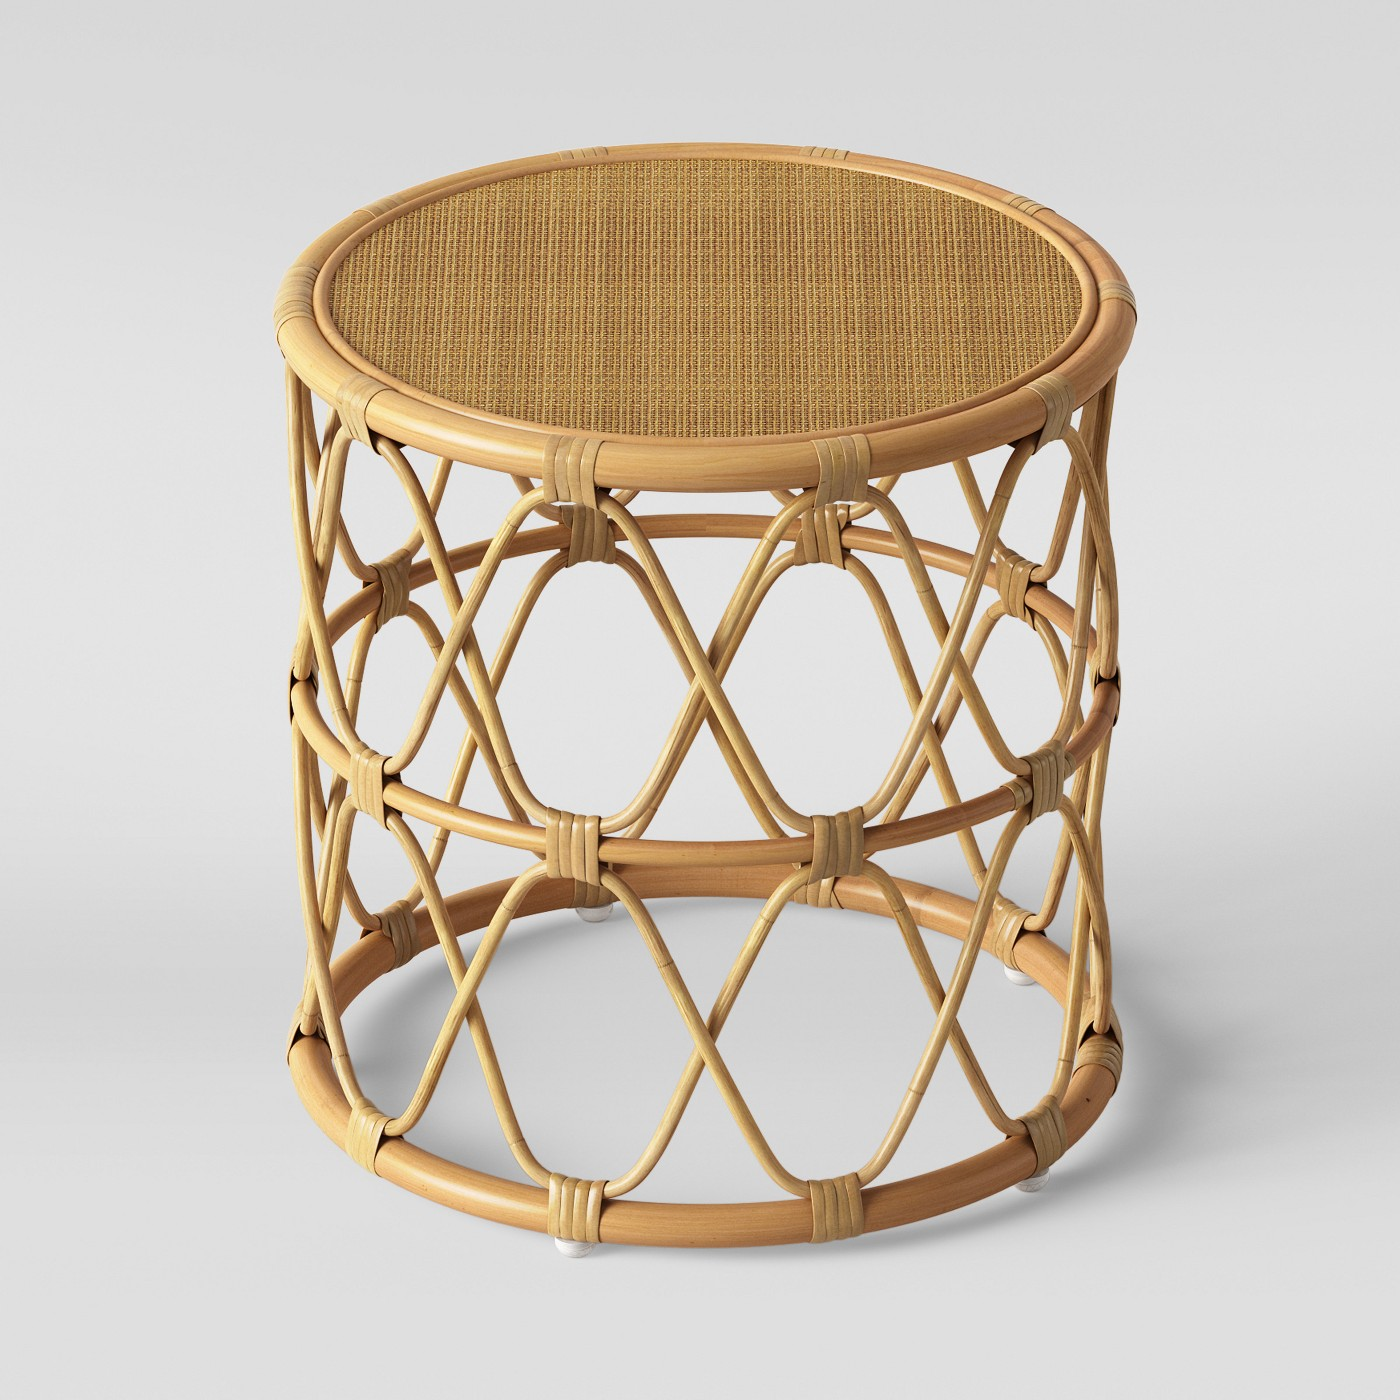 Rattan Side Table $30